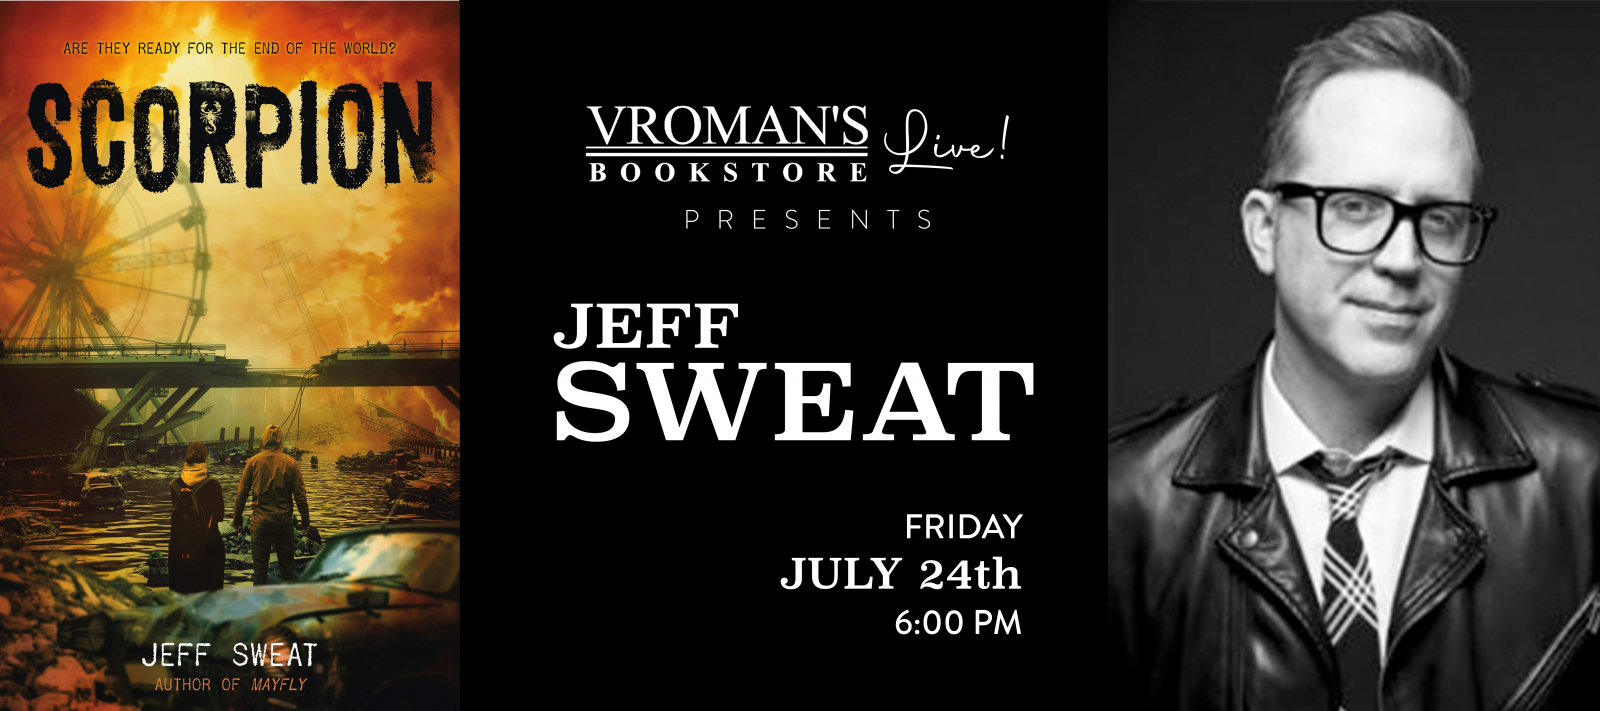 Vroman's Live Presents Jeff Sweat on Friday July 24th at 6pm